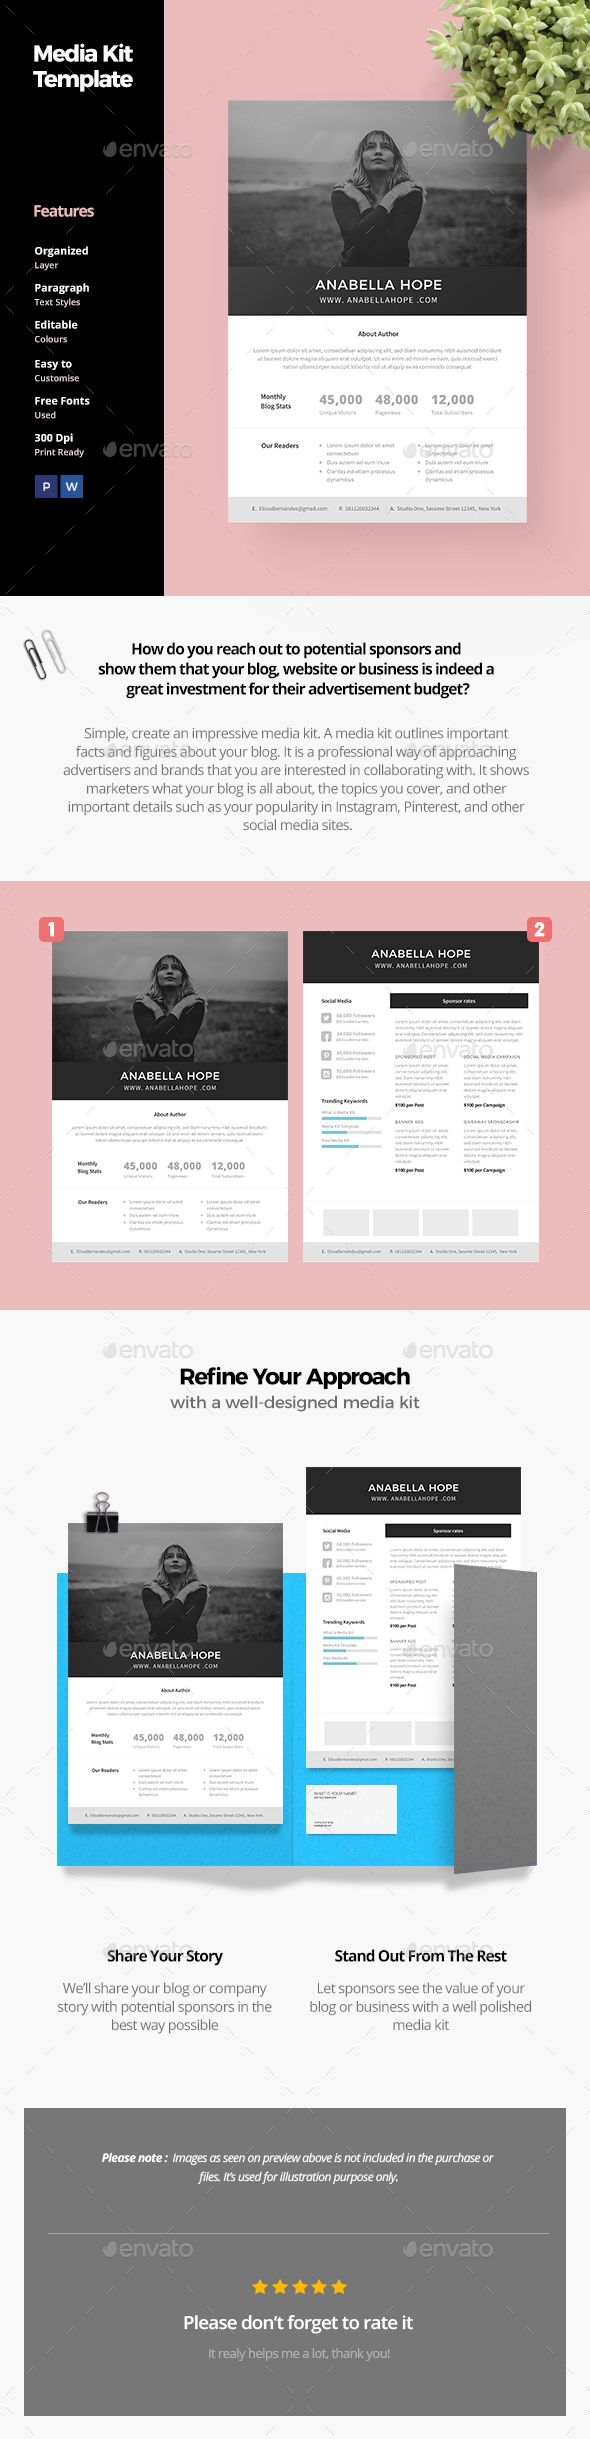 Media Kit Template | Media kit template, Media kit and Template